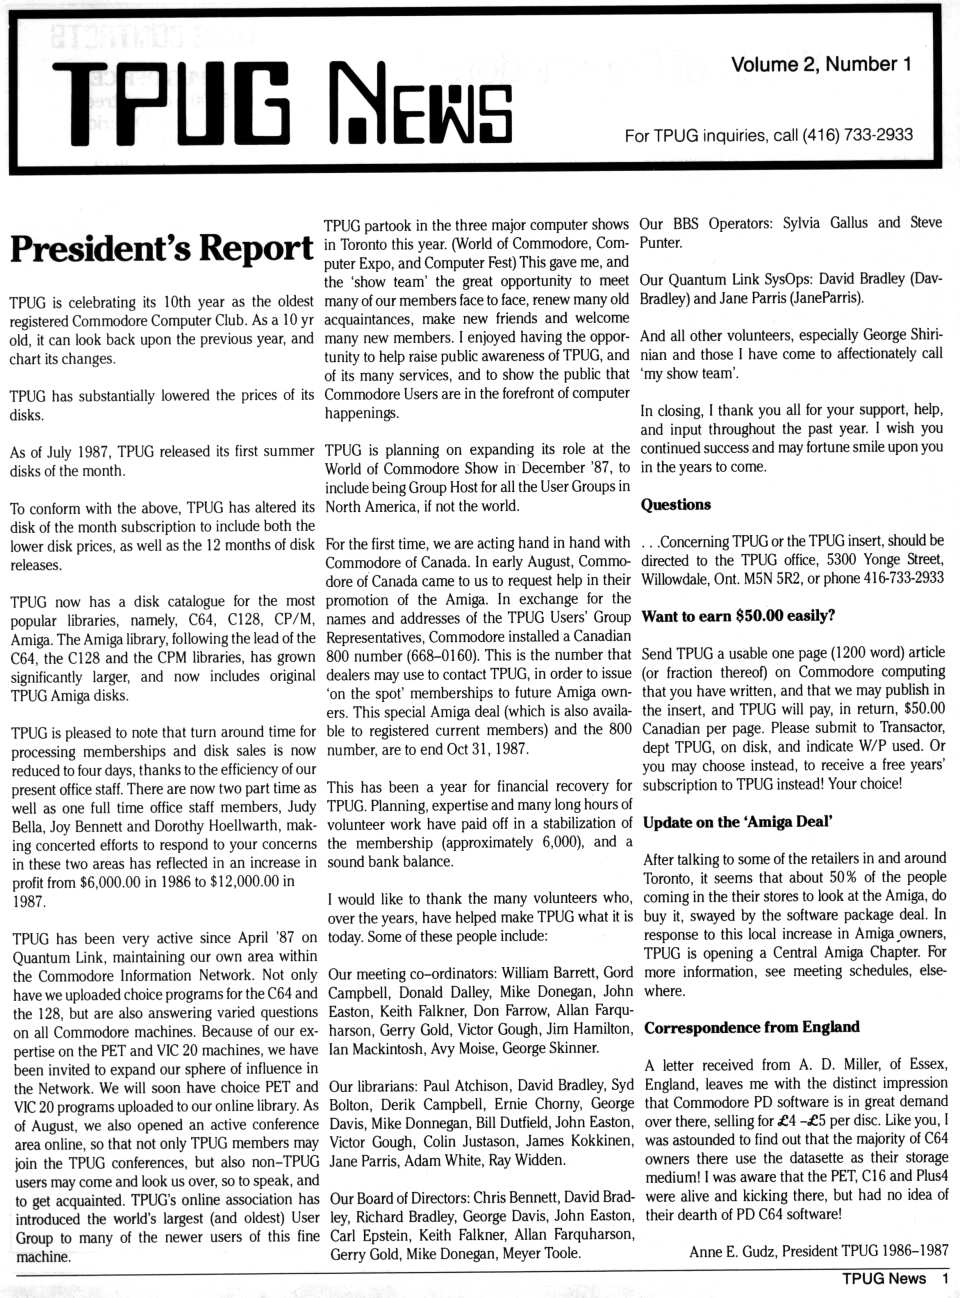 [TPUG News, Volume 2, Number 1, page 1  President's Report]